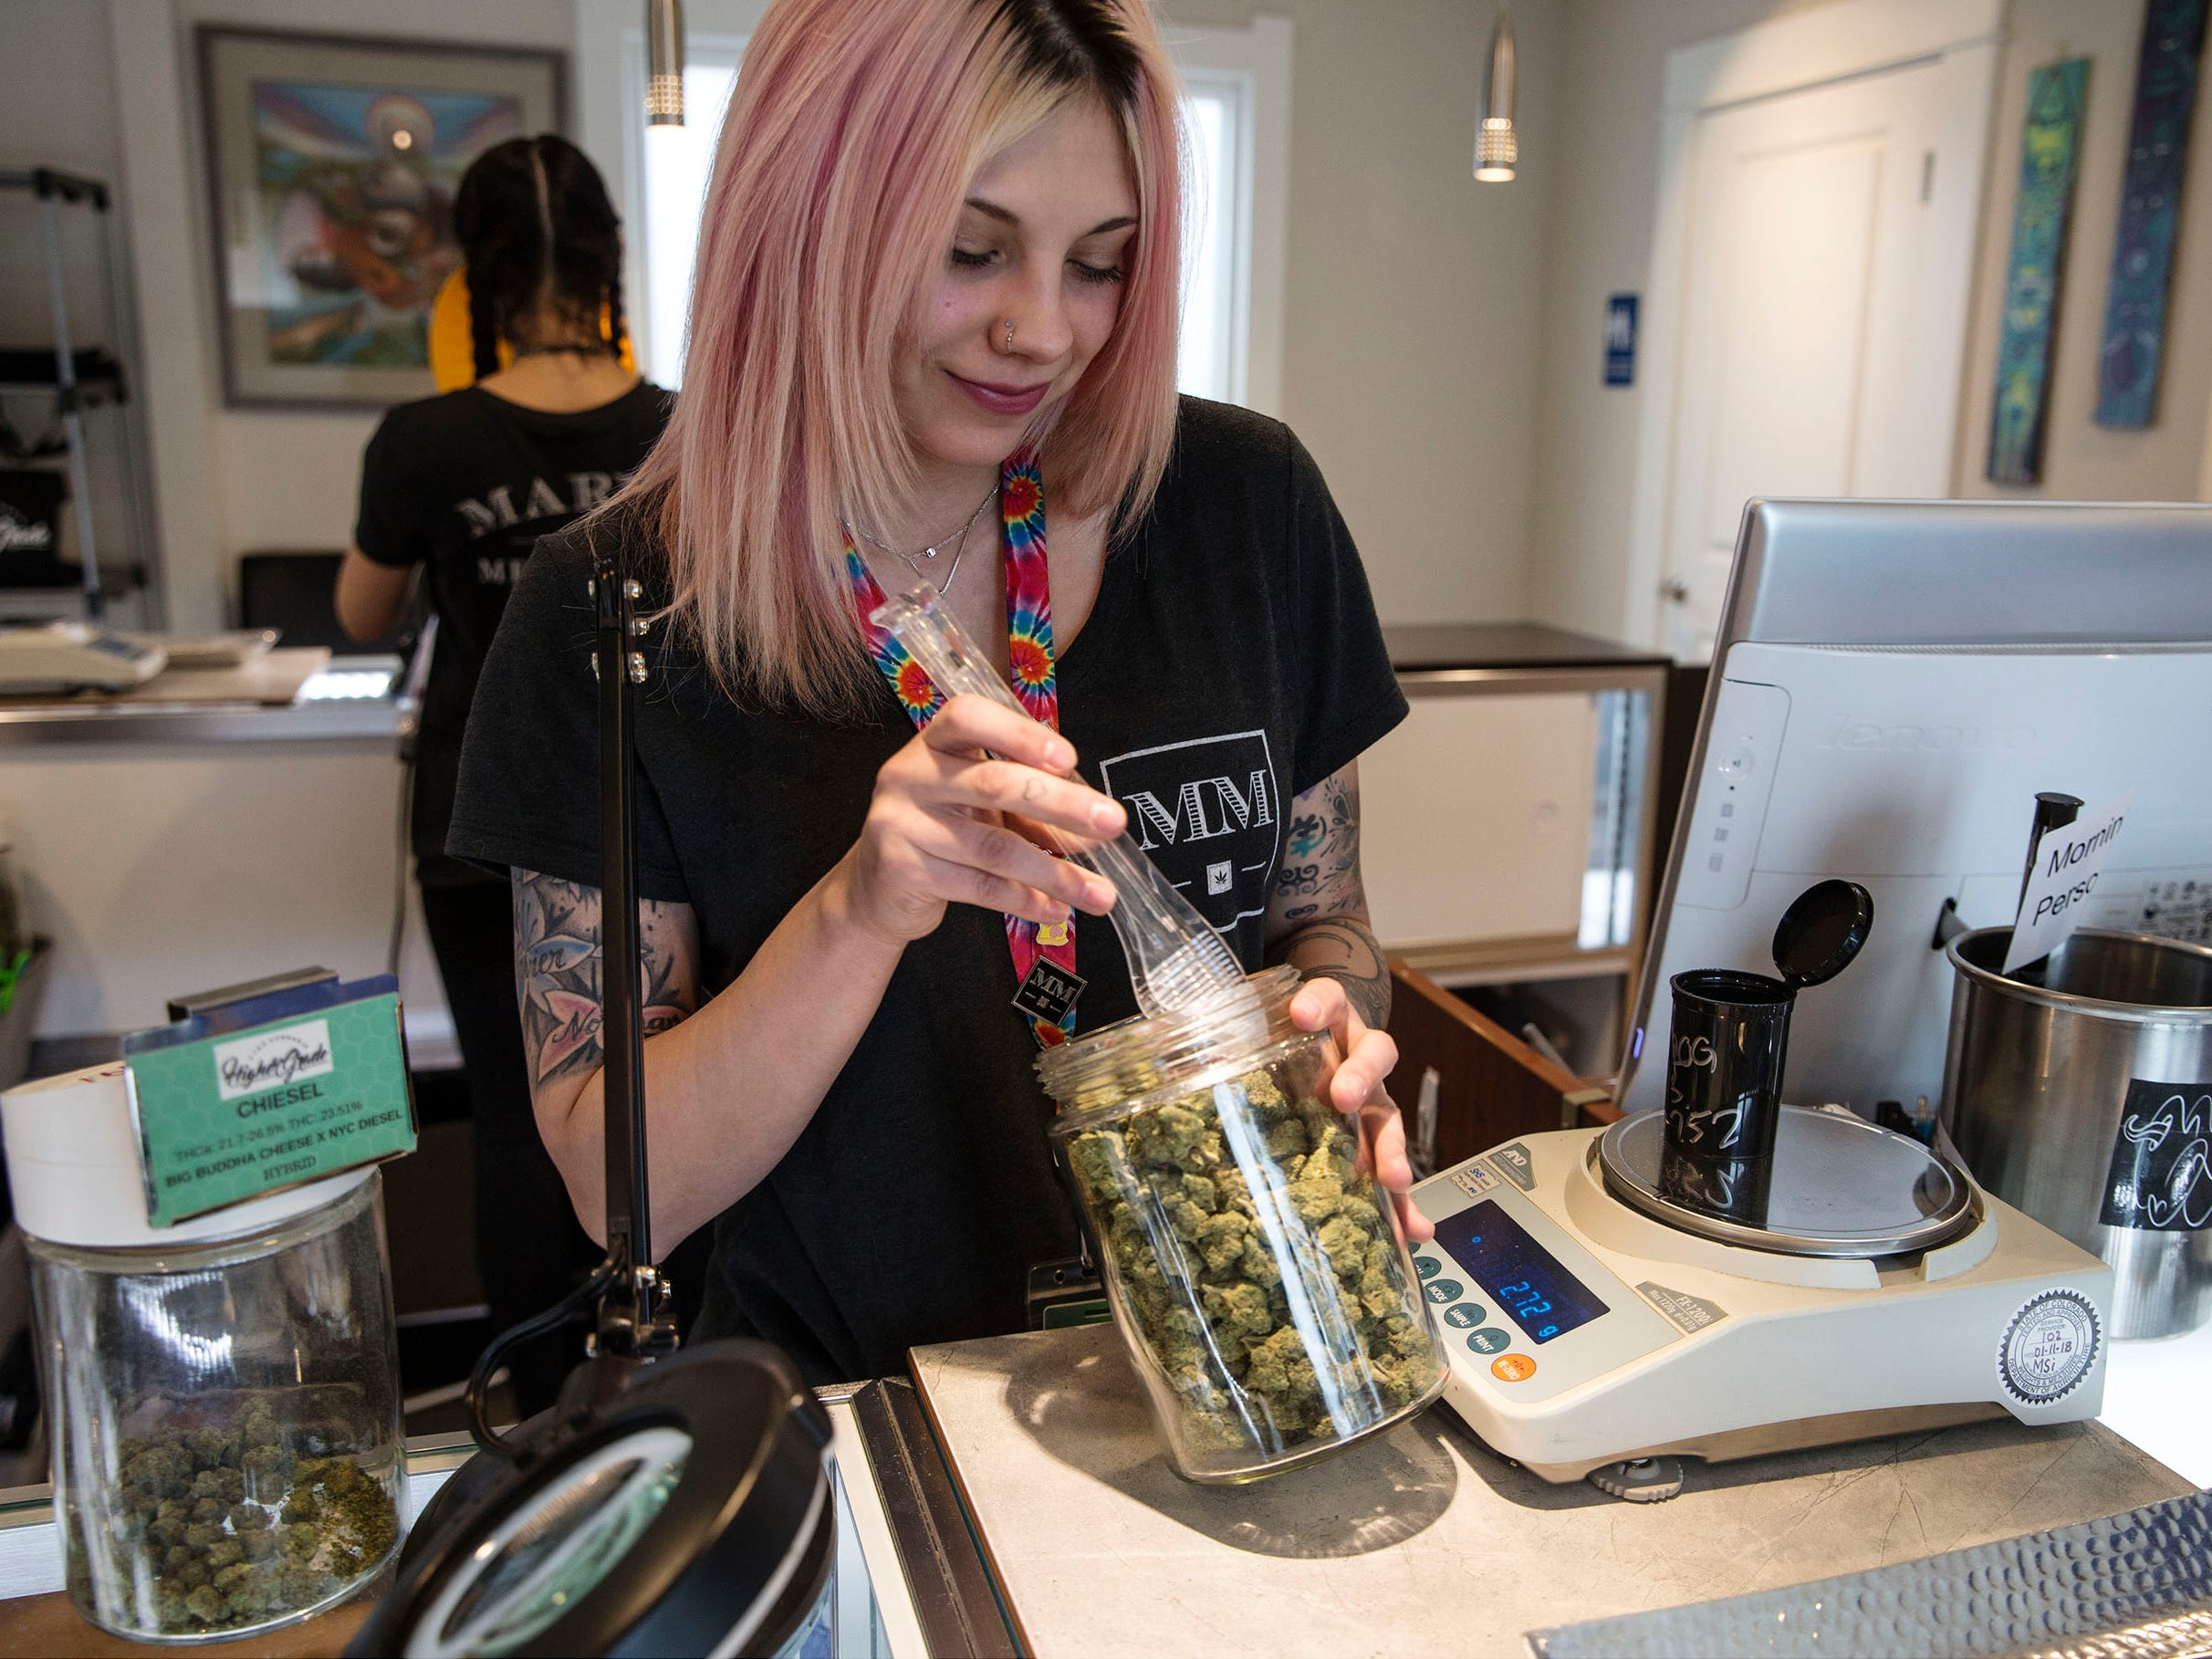 Bud tender Summer Barker measures out marijuana flower for a medical customer. Higher Grade dispensary offers fine cannabis for medicinal purposes.   Denver, CO on Friday, April 13, 2018